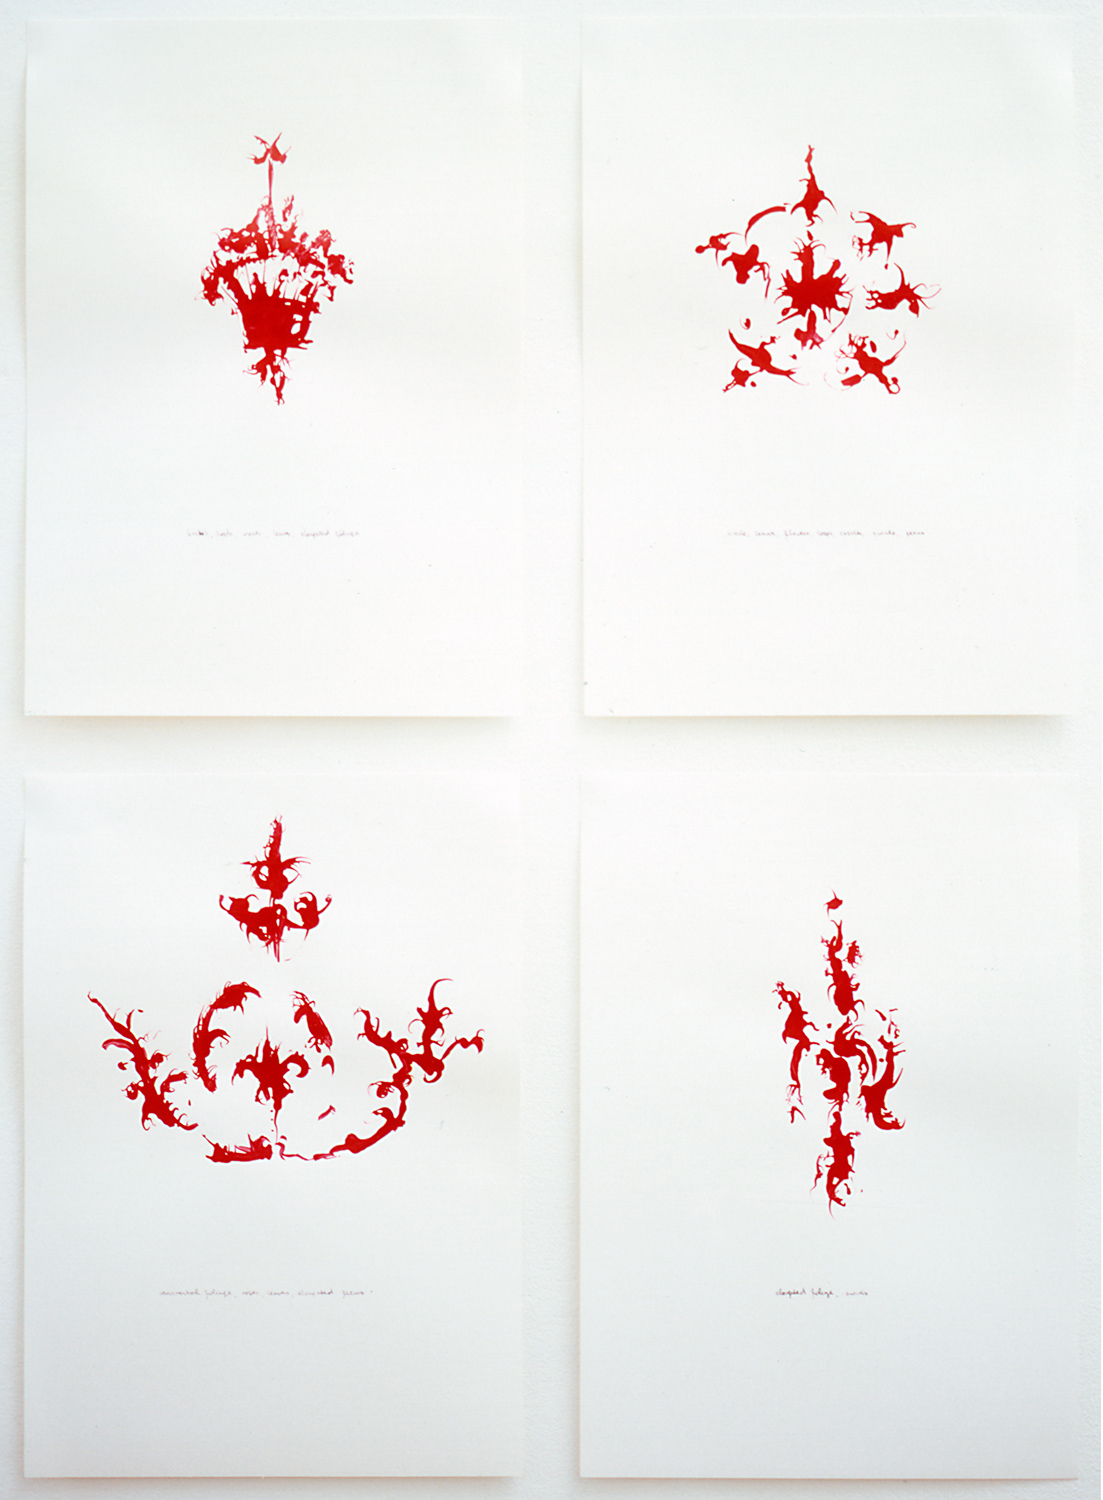 Liandin Cooke, 'Samples' (2003, poster paint and ink on paper) 1